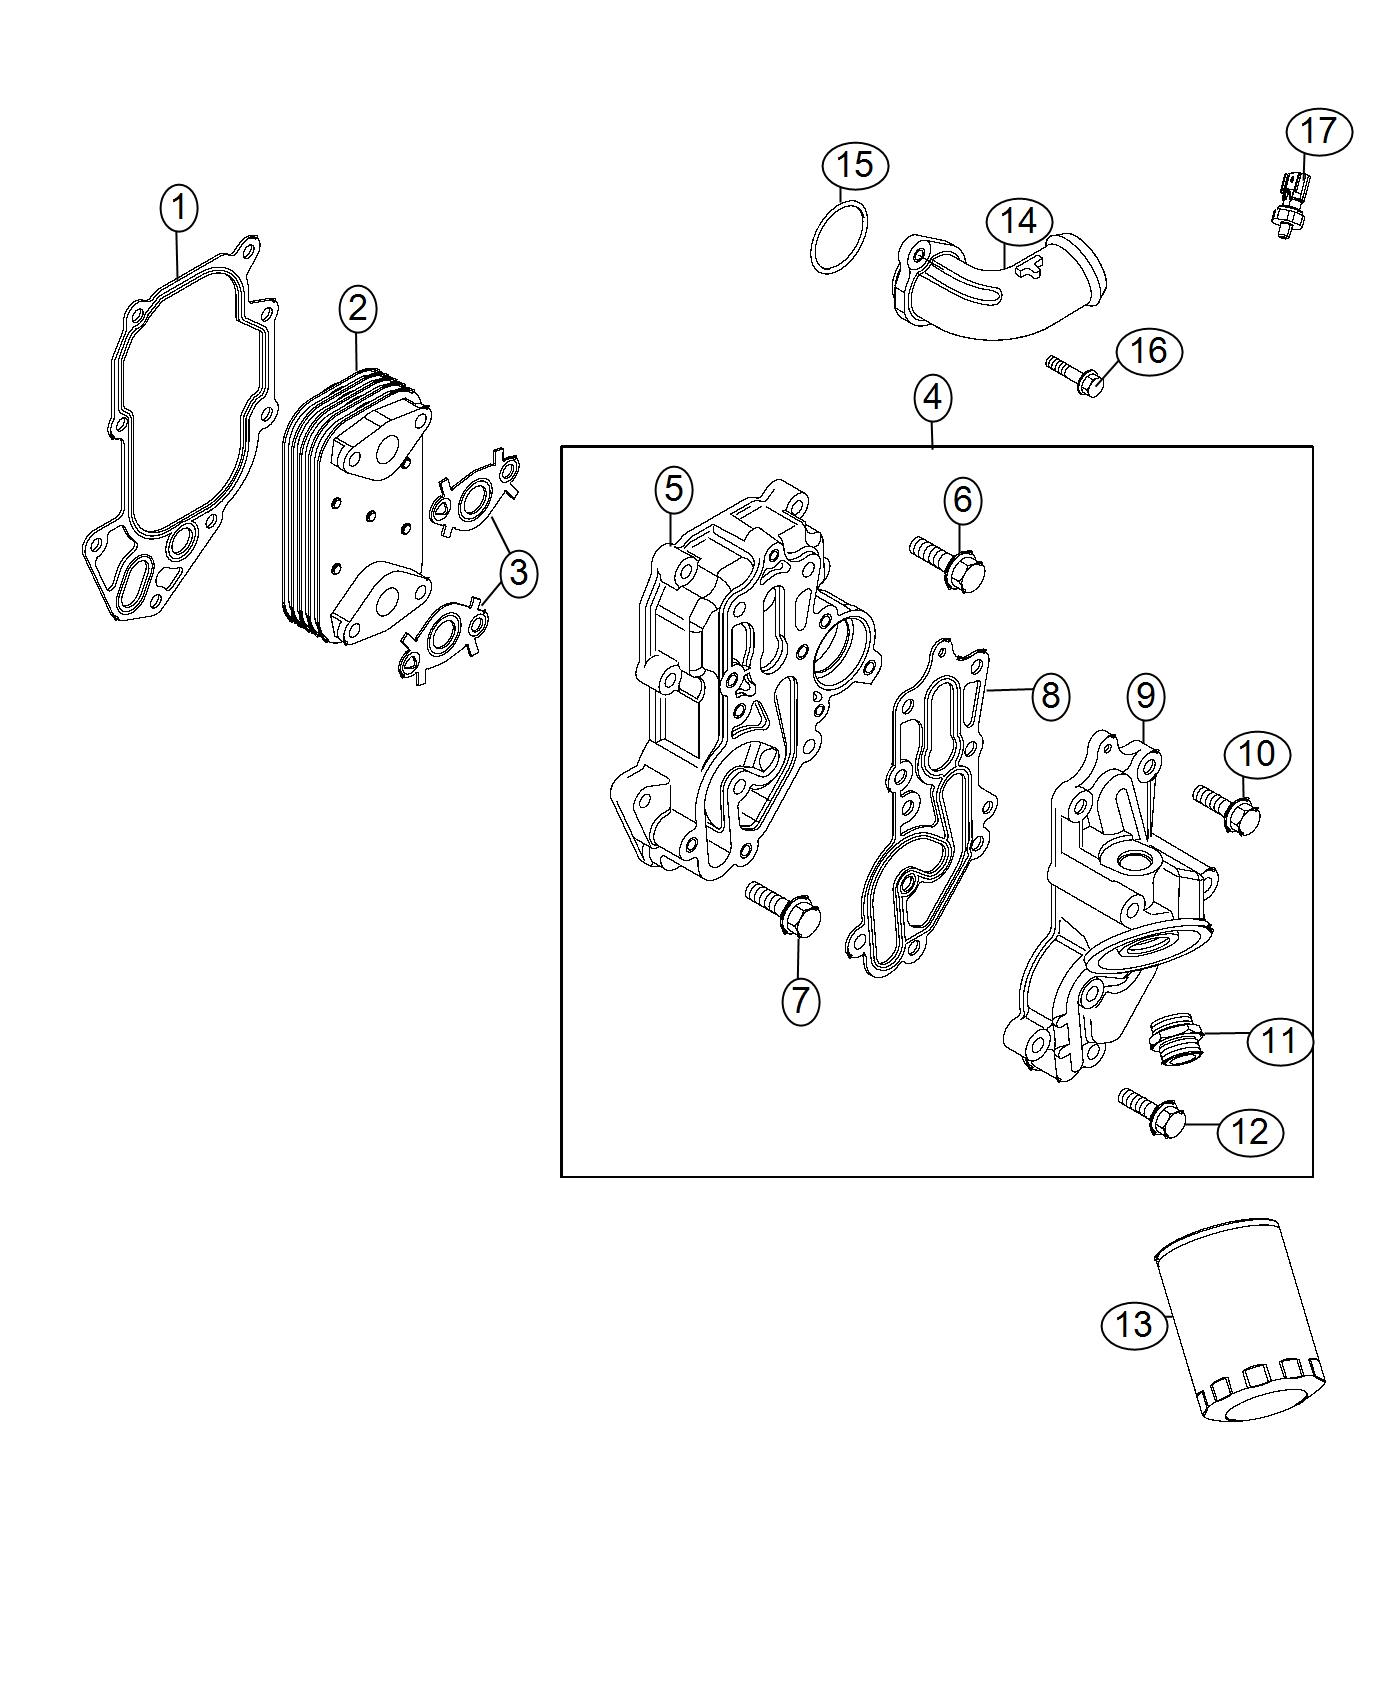 Dodge Ram Connector 02 St Enginesel